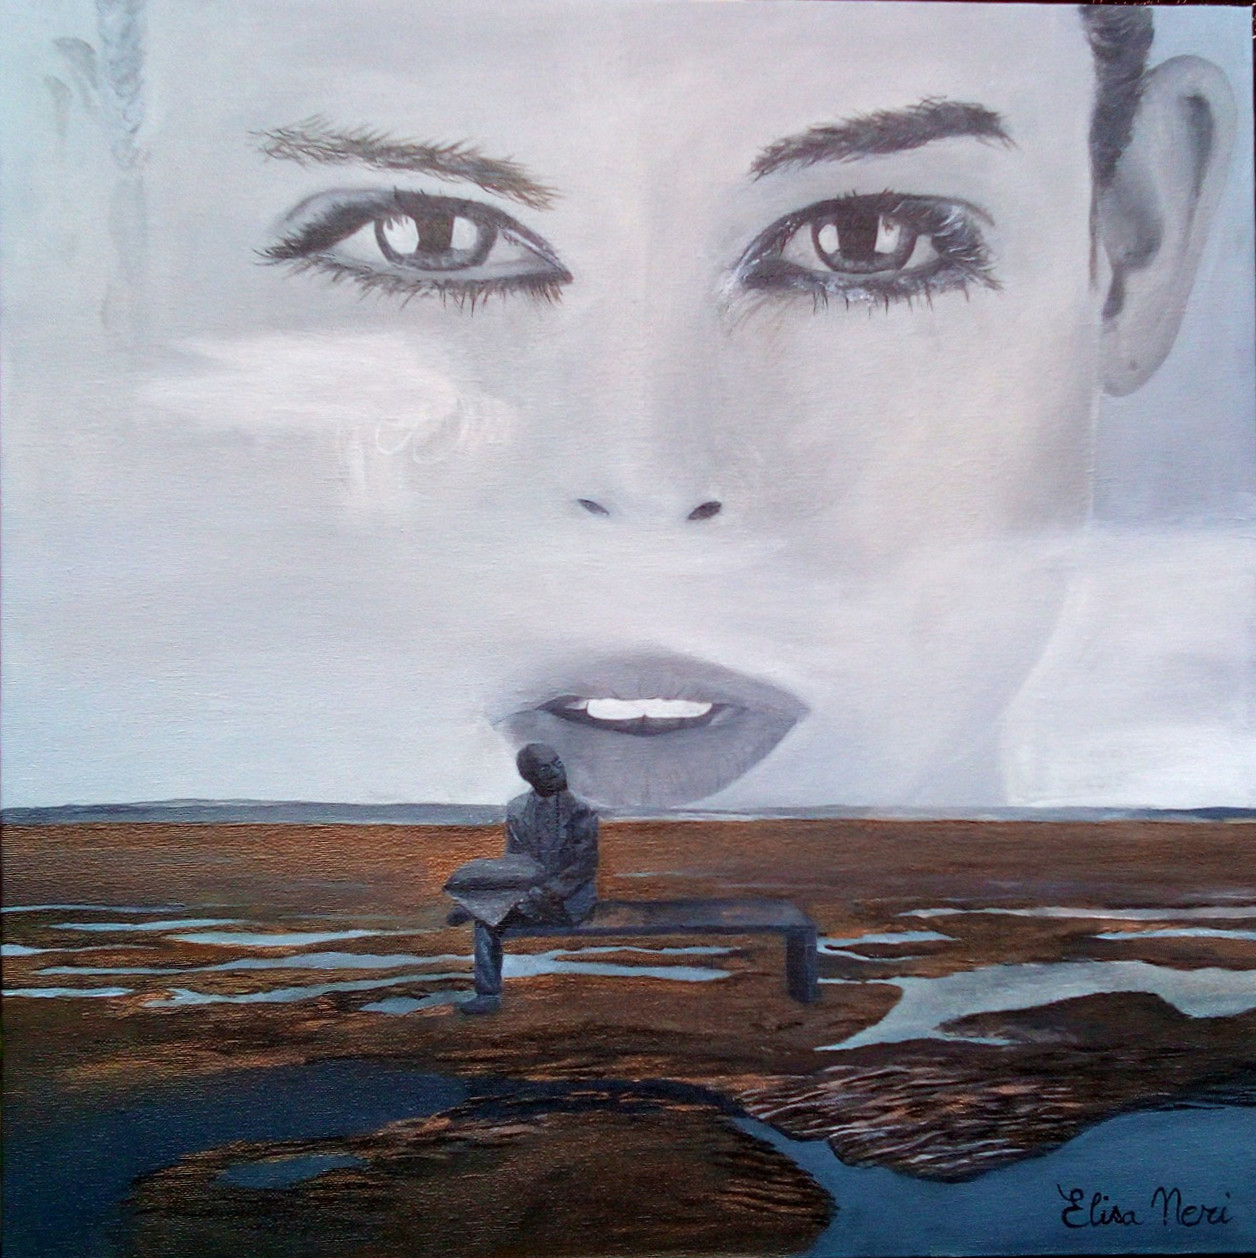 I will wait for you - painting by Elisa Neri